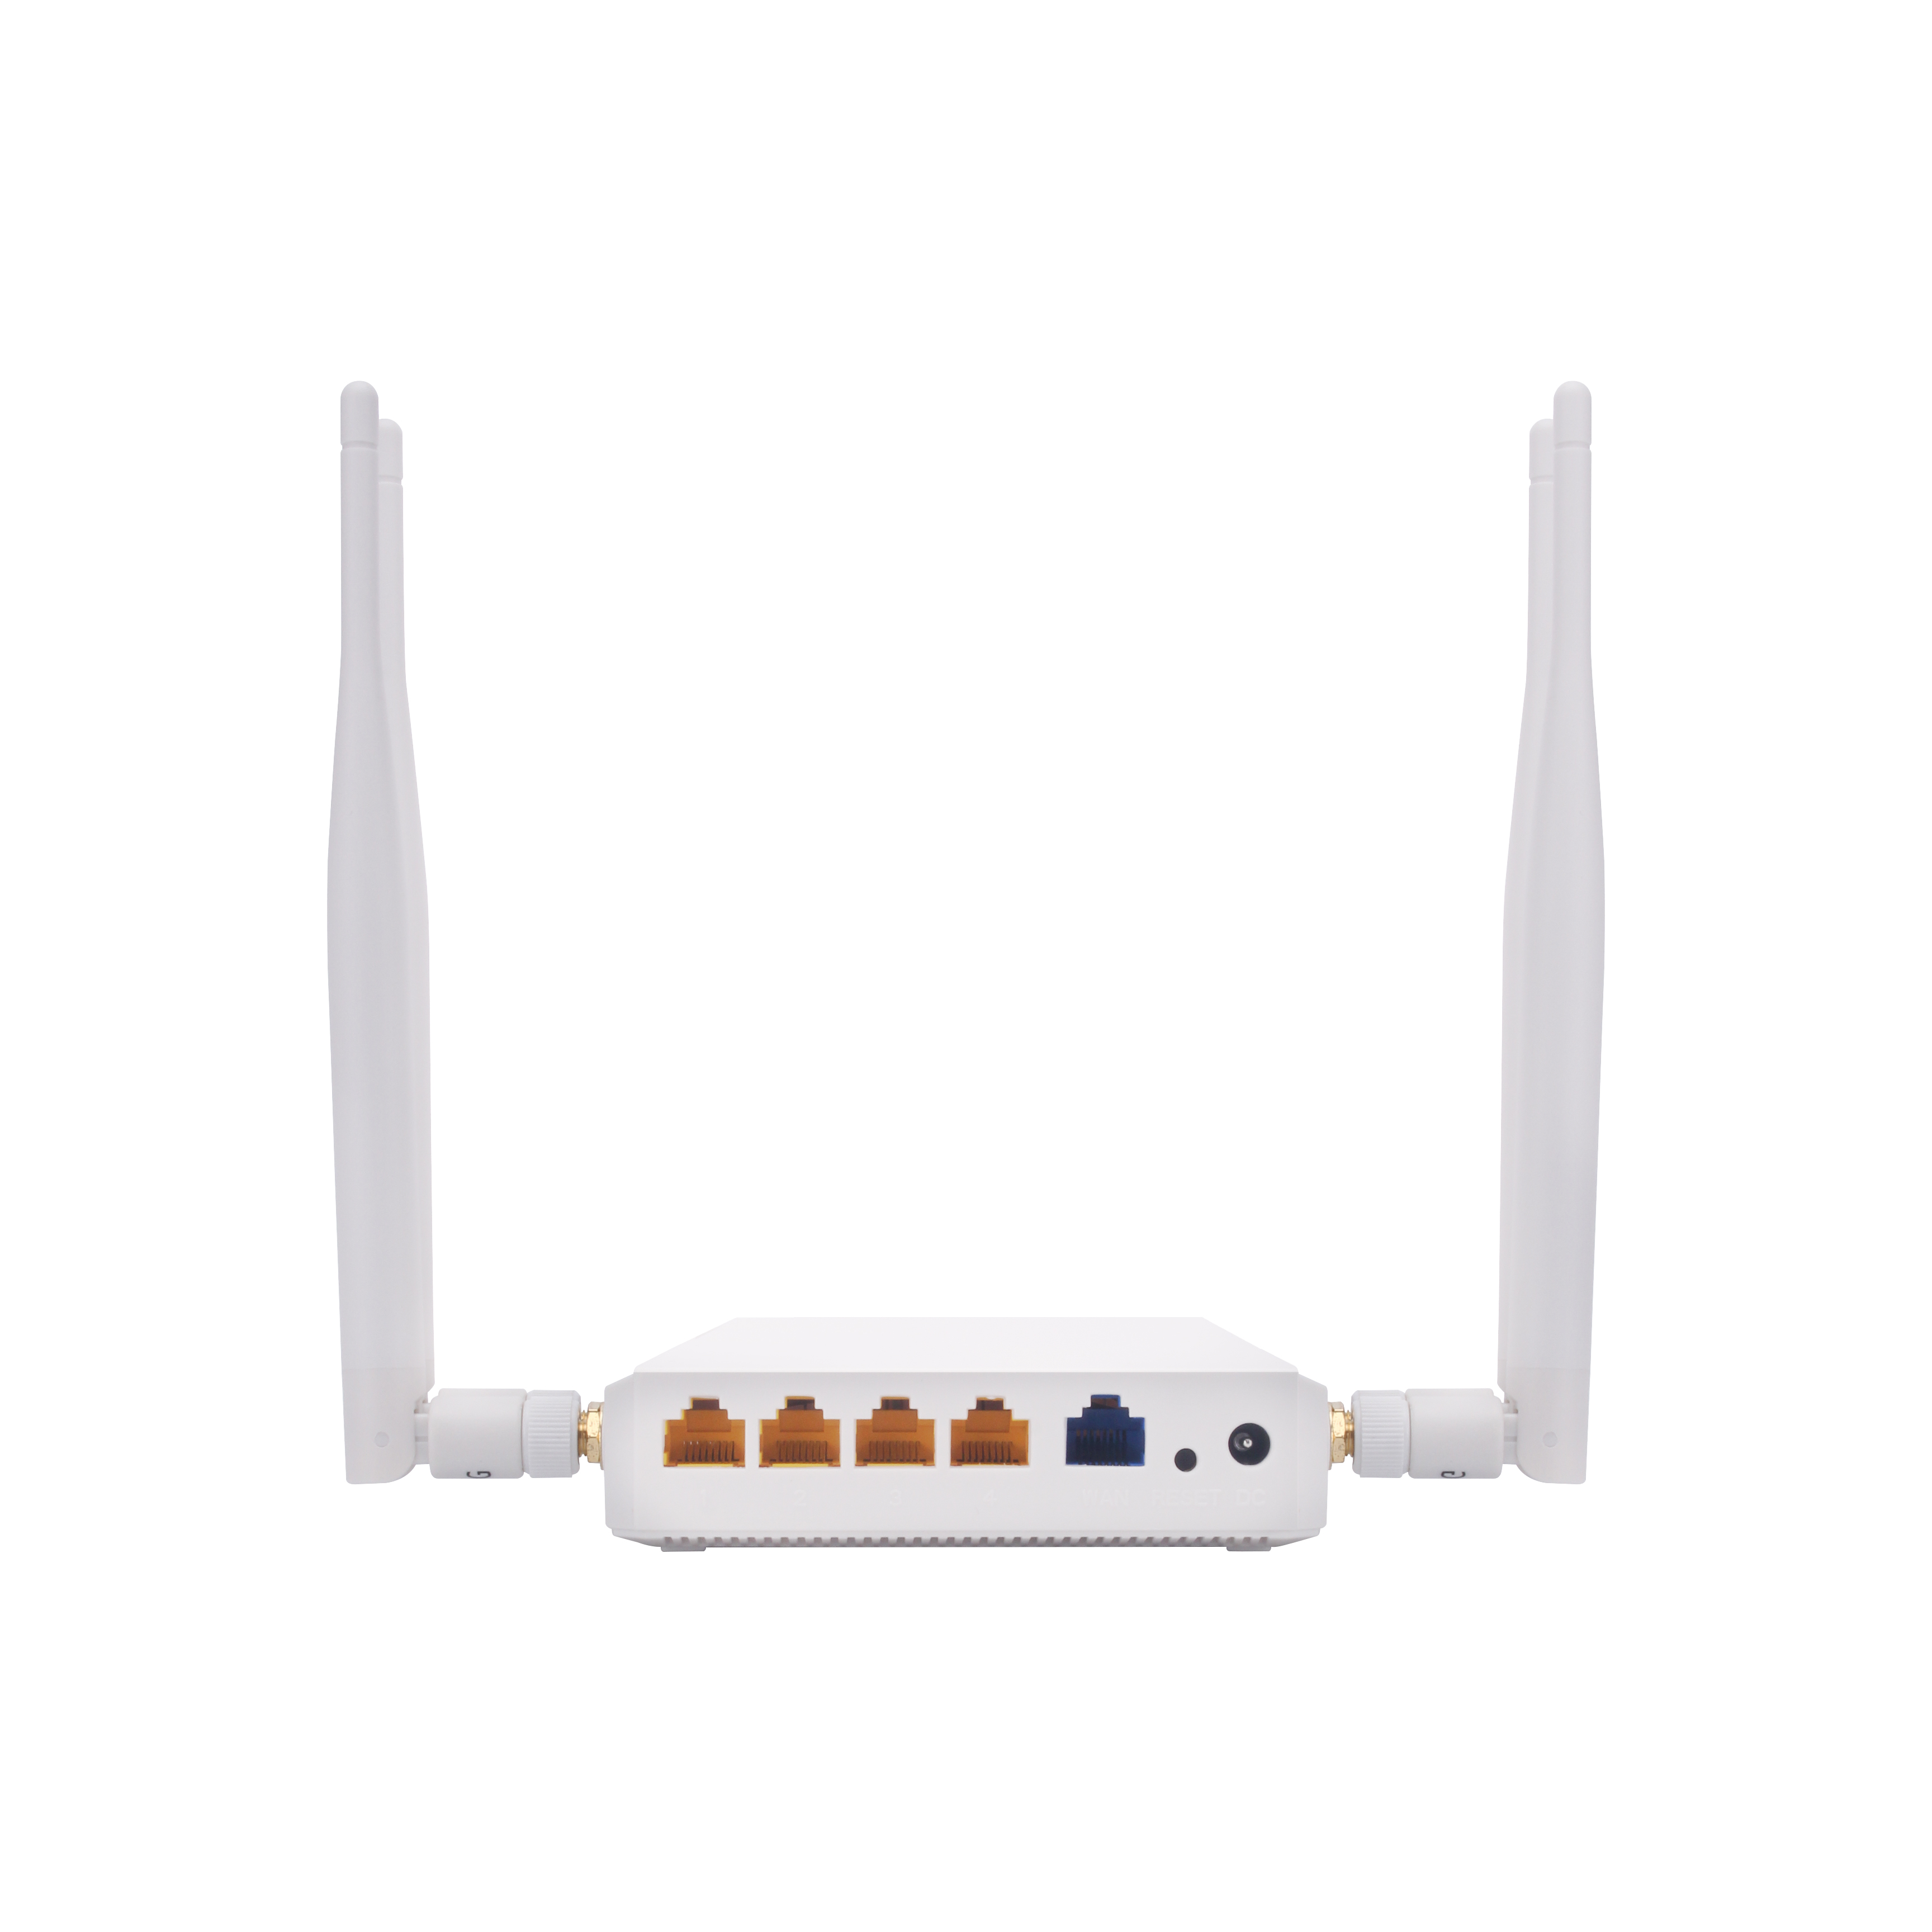 Image 3 - Kuwfi 3G/4G SIM Card Slot Wifi Router OpenWrt 300Mbps High Power Wireless Router Repeater with VPN Function and 4*5dBi Antenna-in Wireless Routers from Computer & Office